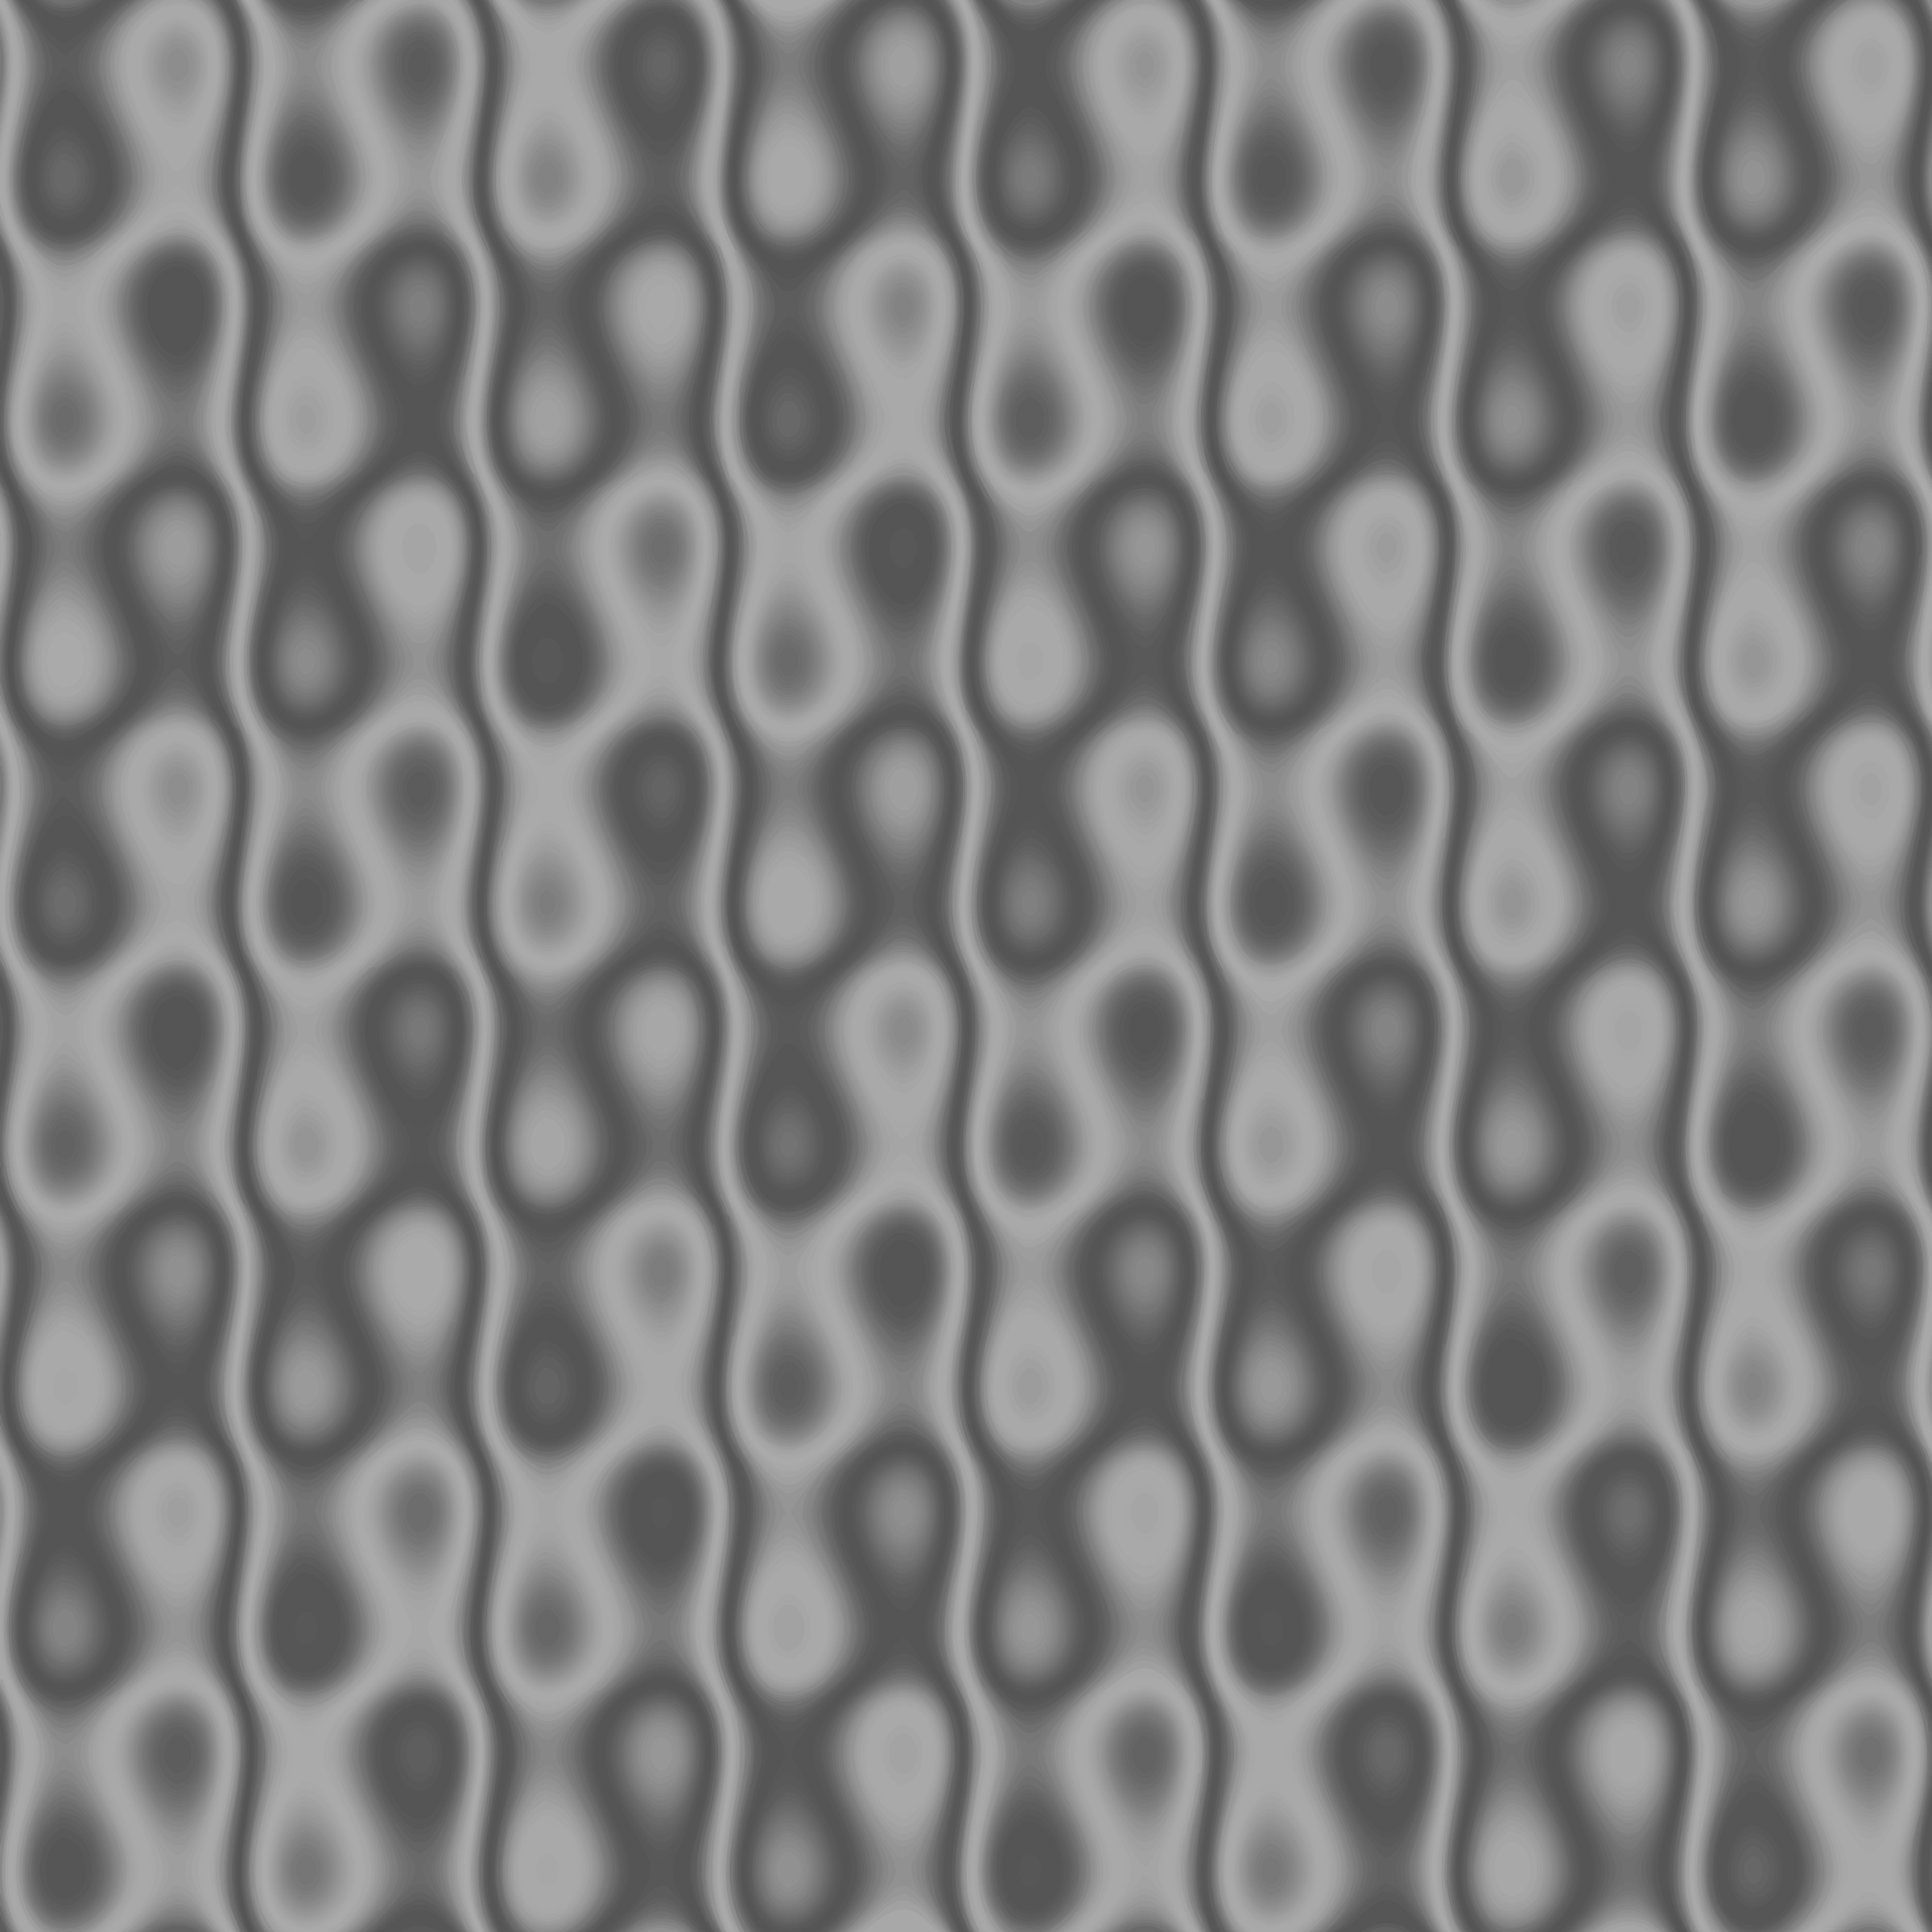 Background pattern 42 (greyscale) by Firkin